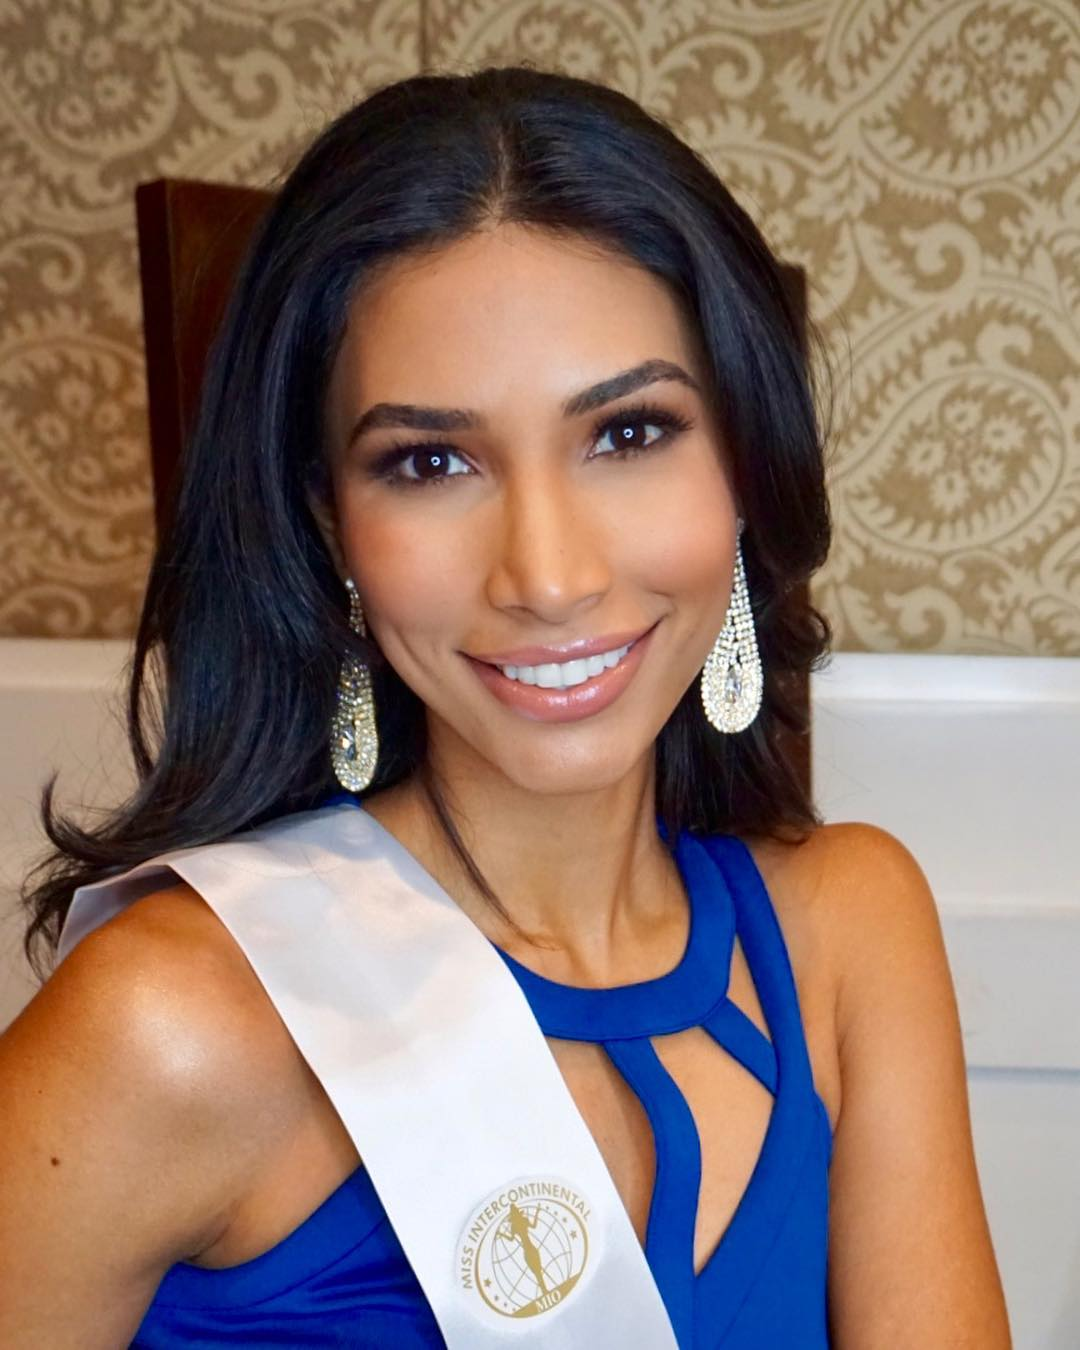 marianny egurrola, top 20 de miss intercontinental 2018-2019. - Página 2 47581711